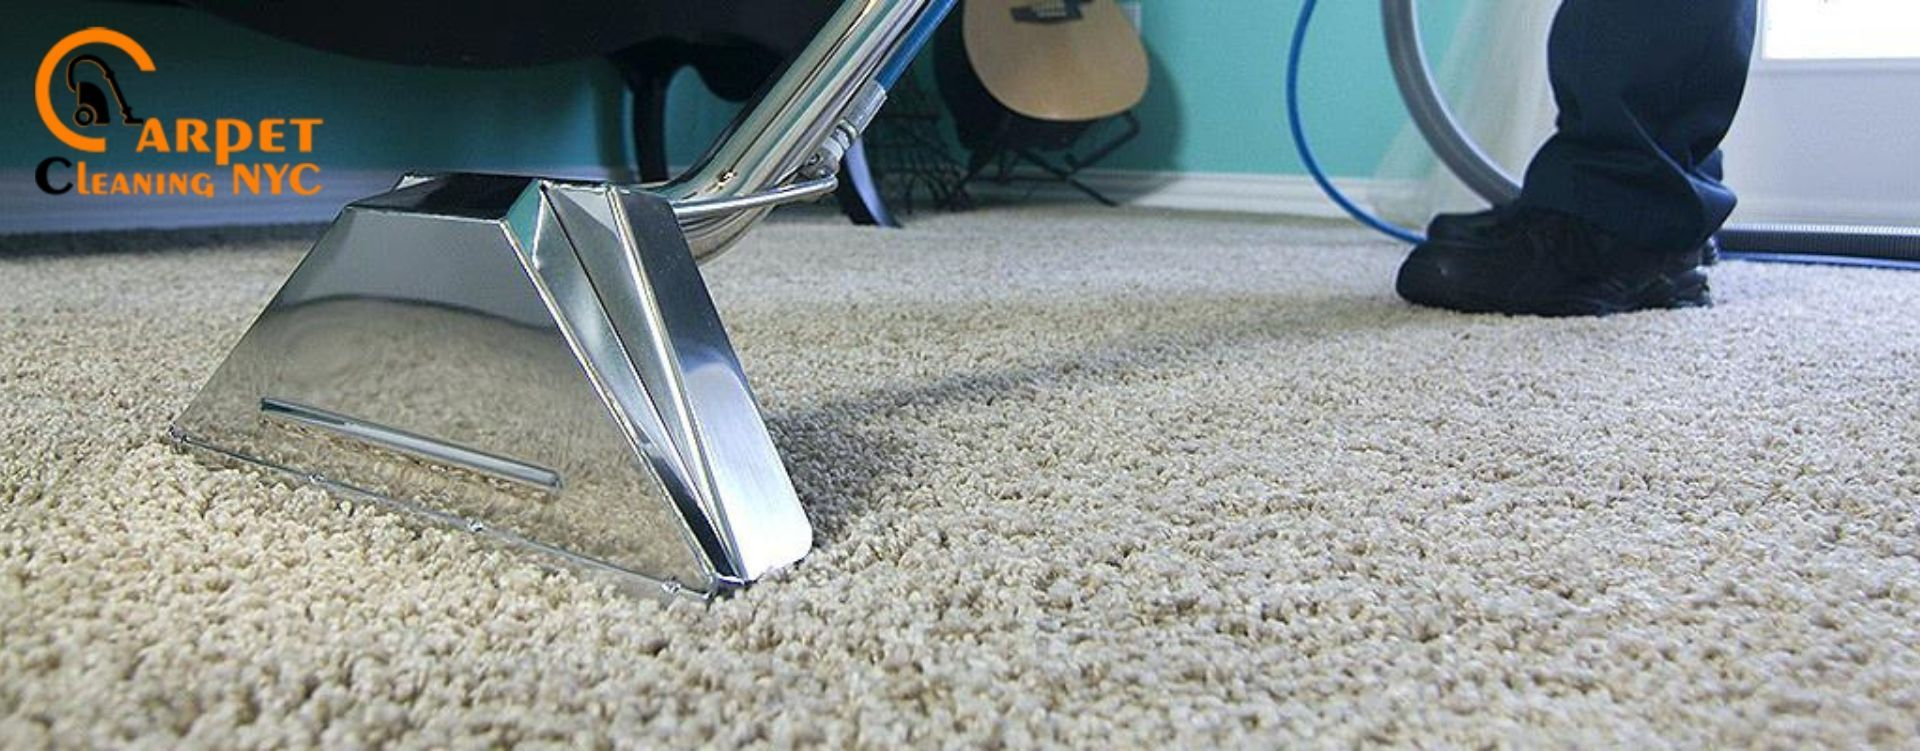 Advantages Of Carrying Out Regular Carpet Cleaning Nyc Carpet Cleaning Service How To Clean Carpet Natural Carpet Cleaning